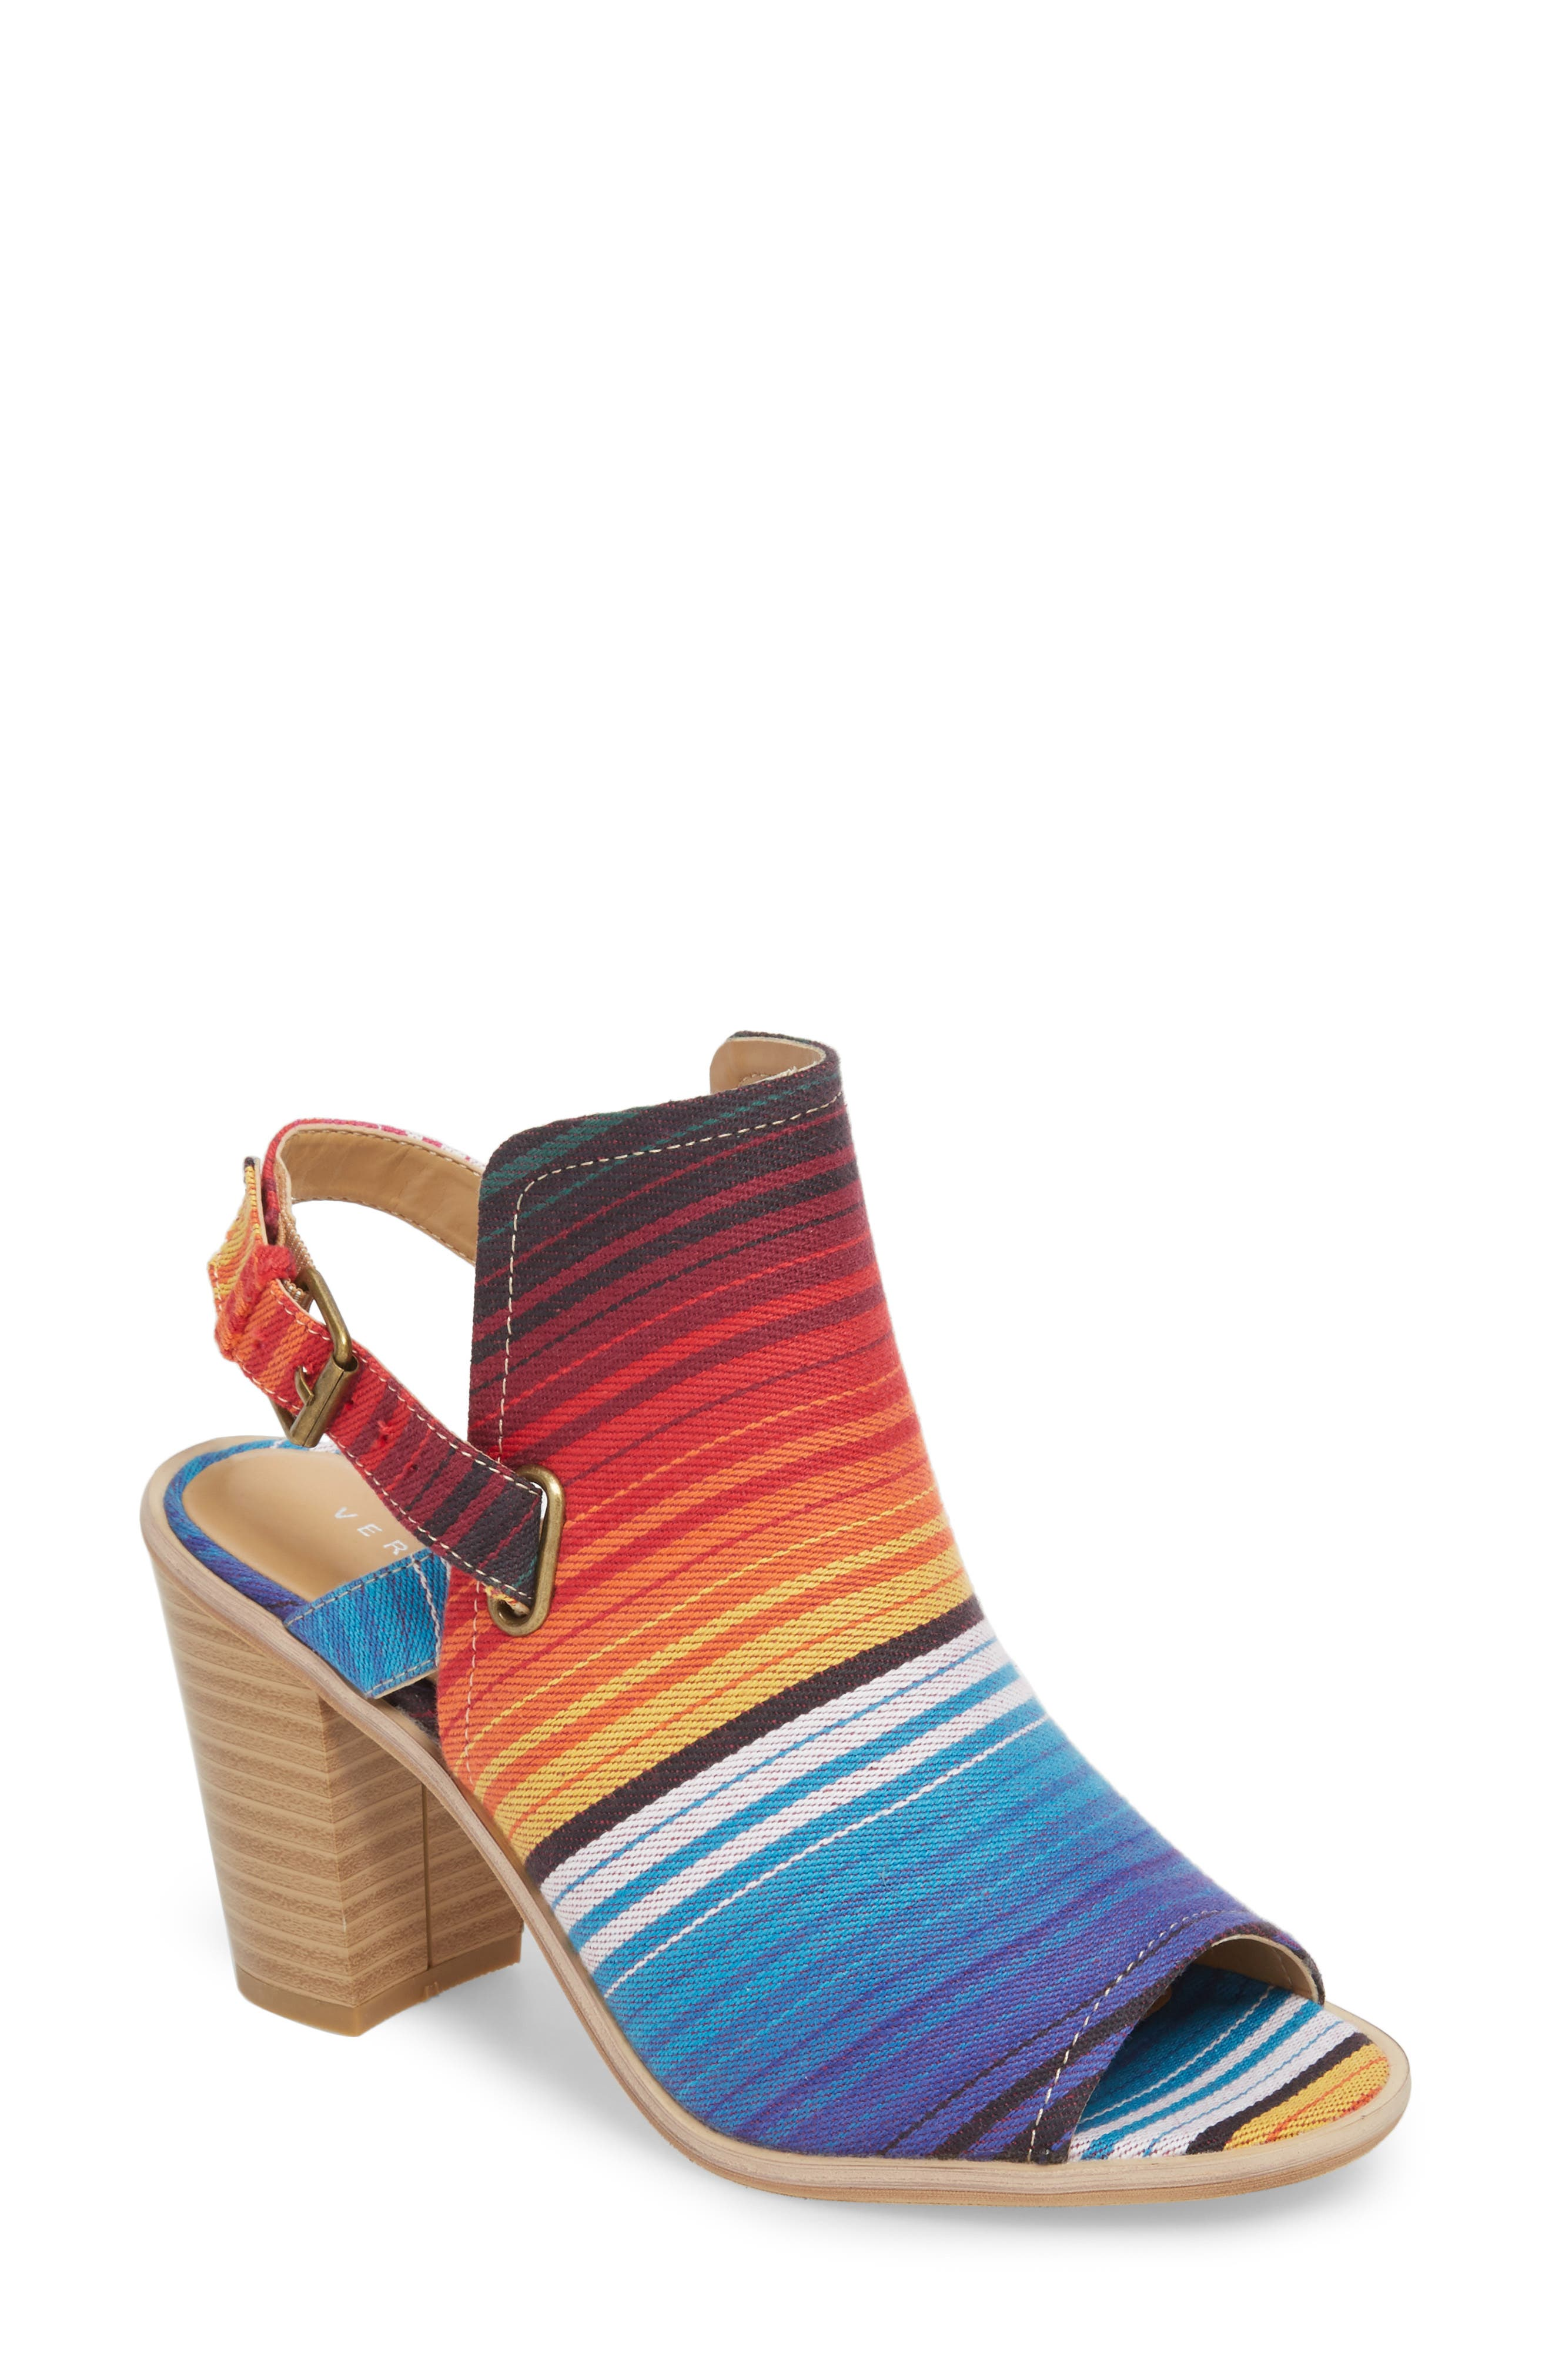 Kerstin Sandal,                         Main,                         color, Serape